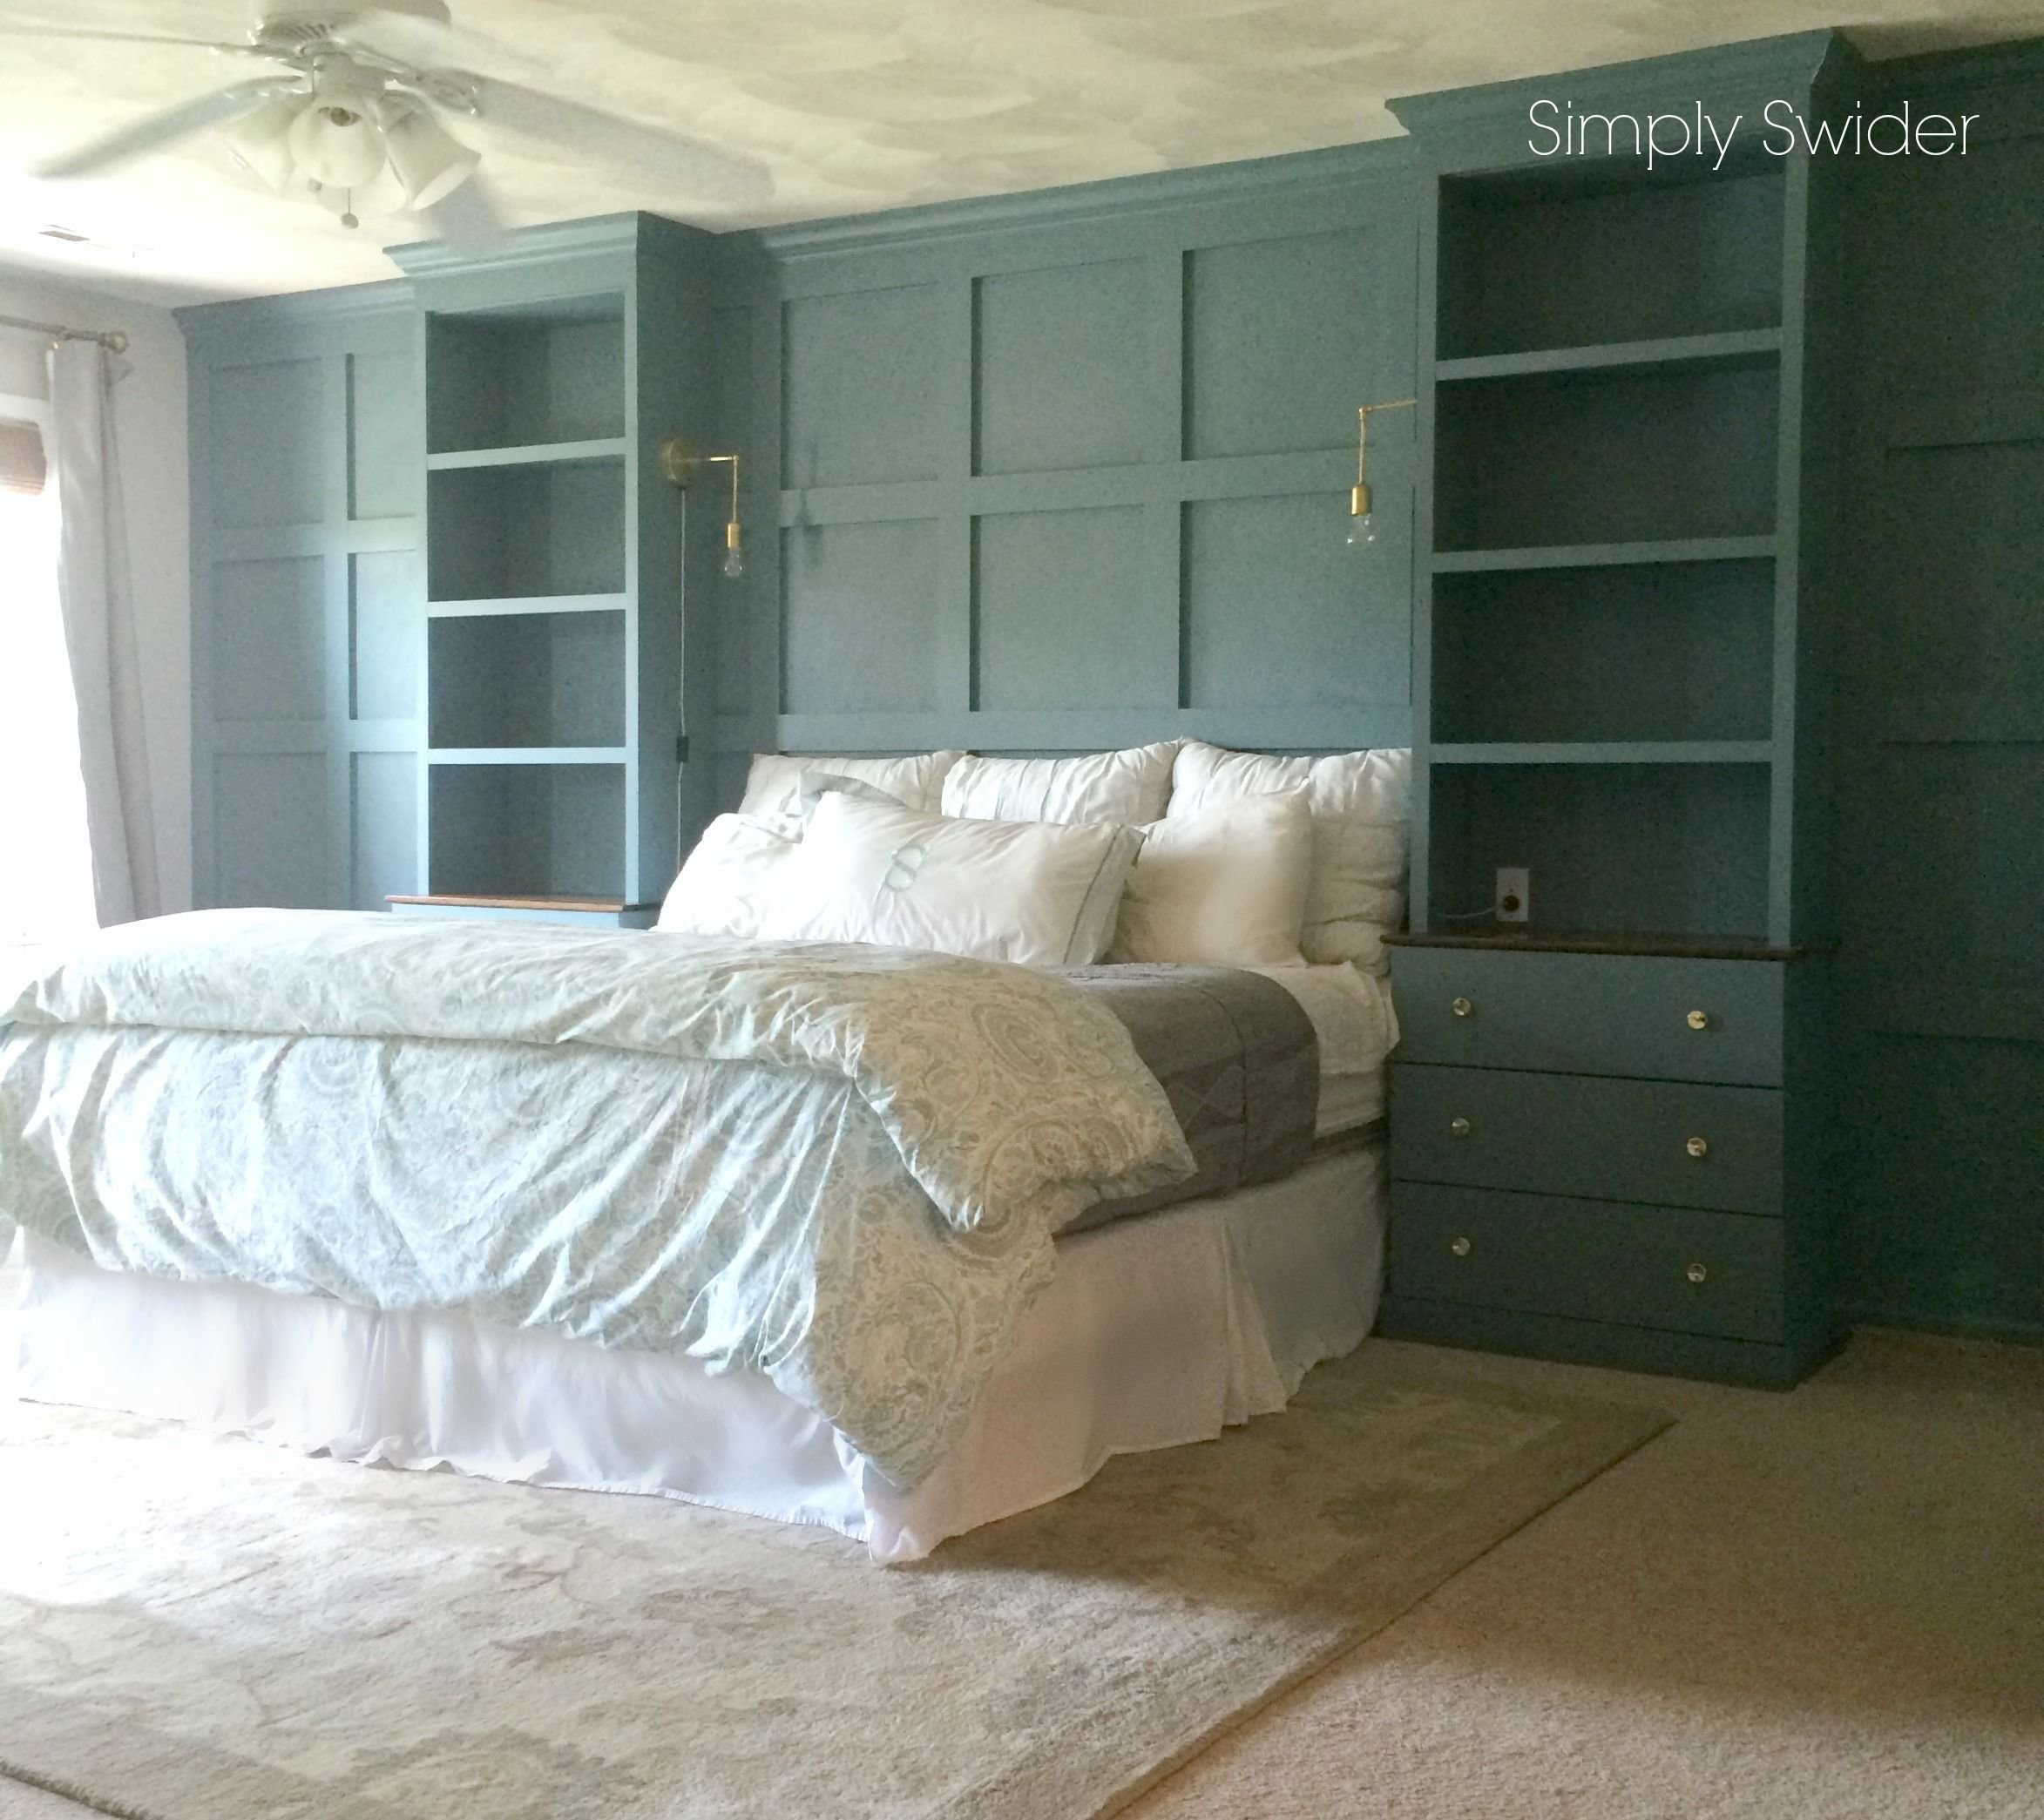 Best Diy Built Ins Using An Ikea Tarva Hack Around A Bed With Wainscoting I Love How All The Molding With Pictures